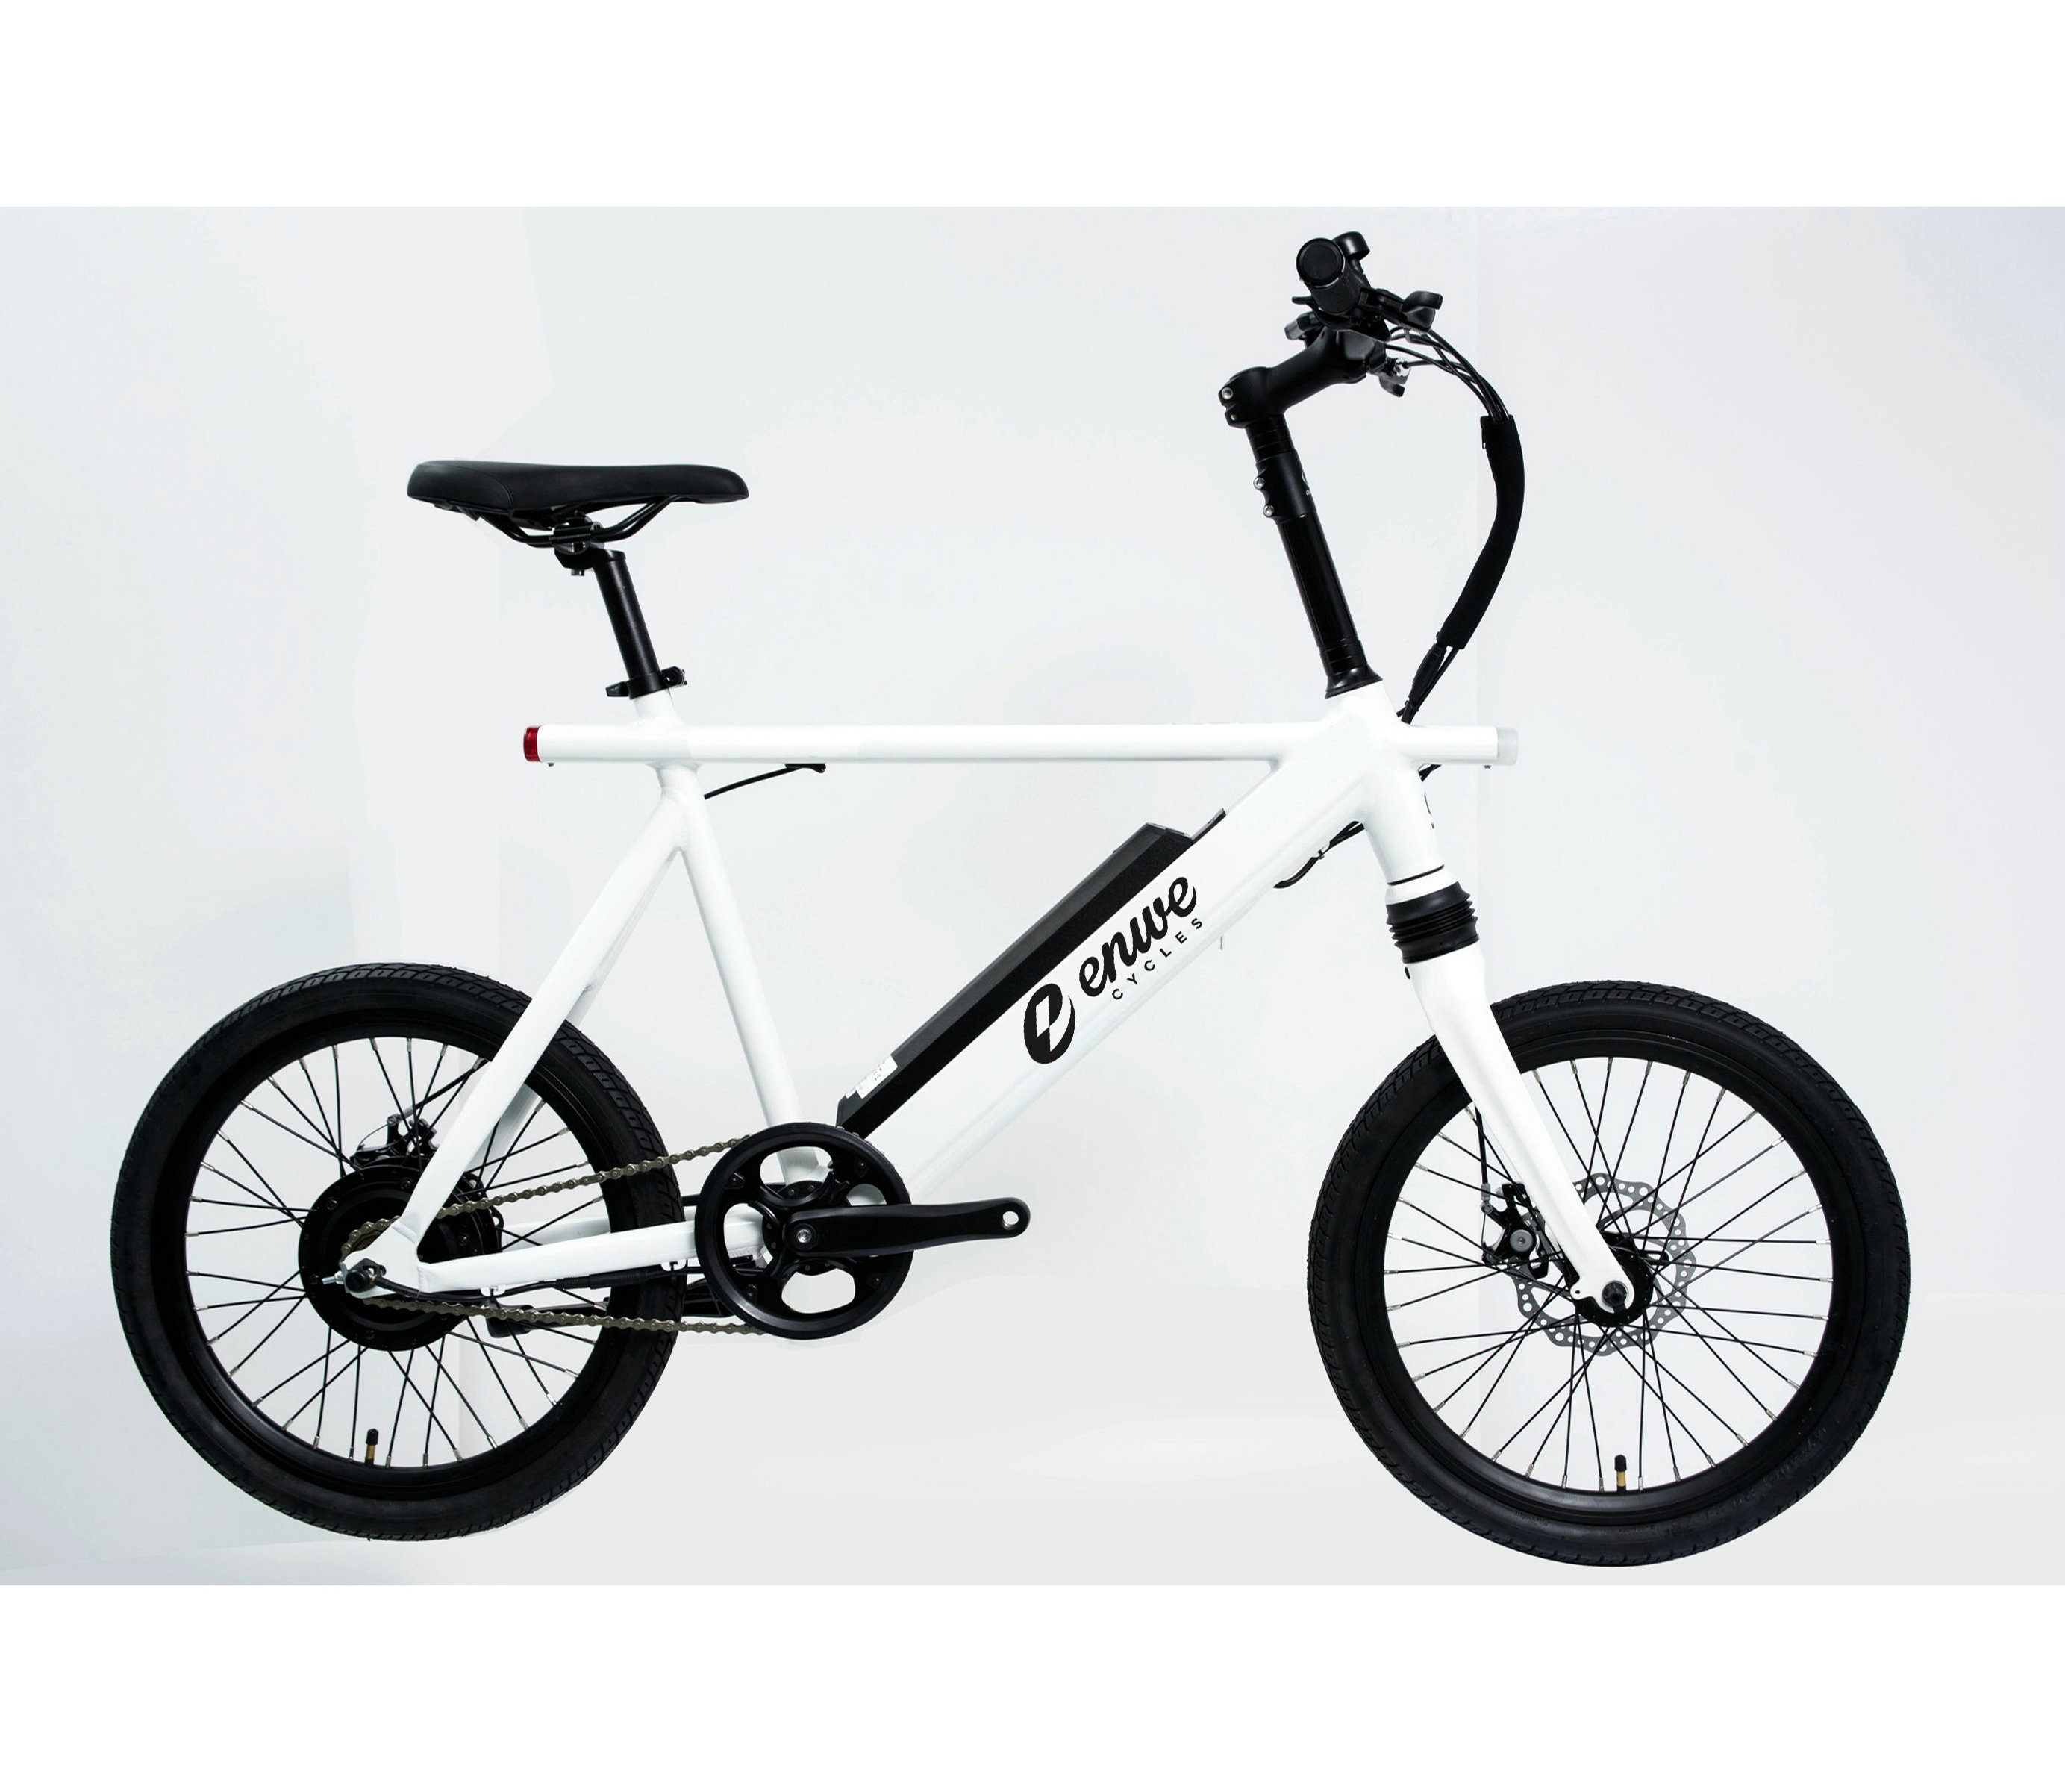 20 Inch 250W 36V 8.8AH Rear Hub Motor City Bike Electric Cheap Bicycle electric bike with 6061 Aluminum Alloy Frame